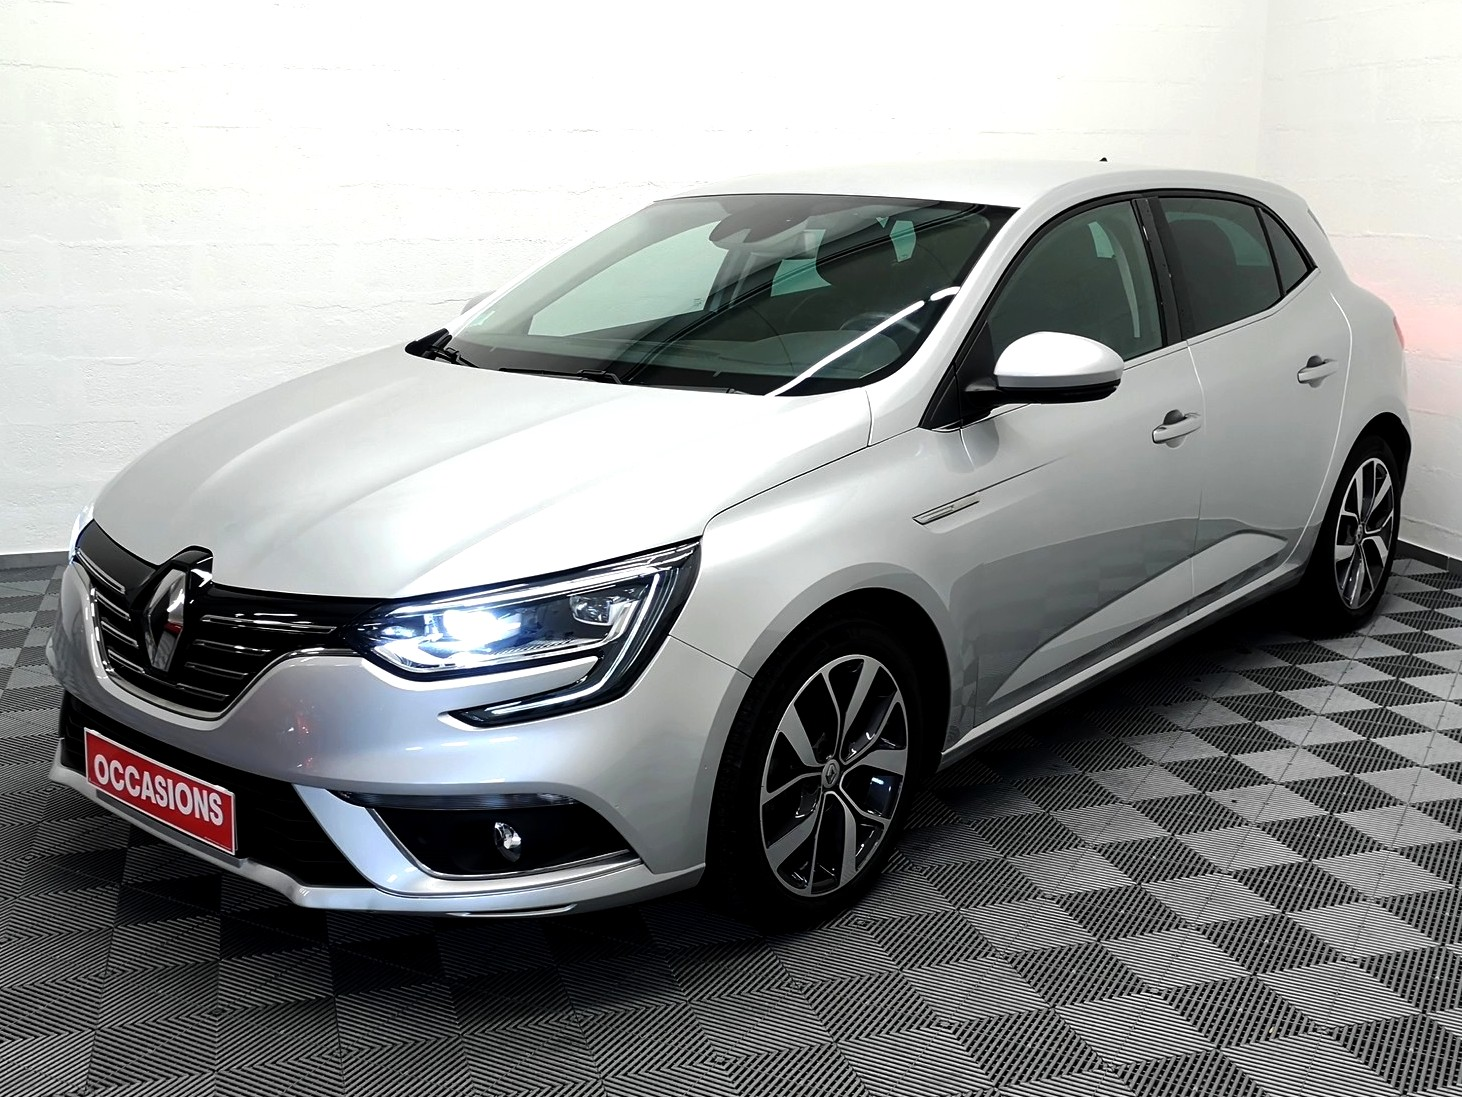 RENAULT MEGANE IV BERLINE 2016 à 14900 € - Photo n°1